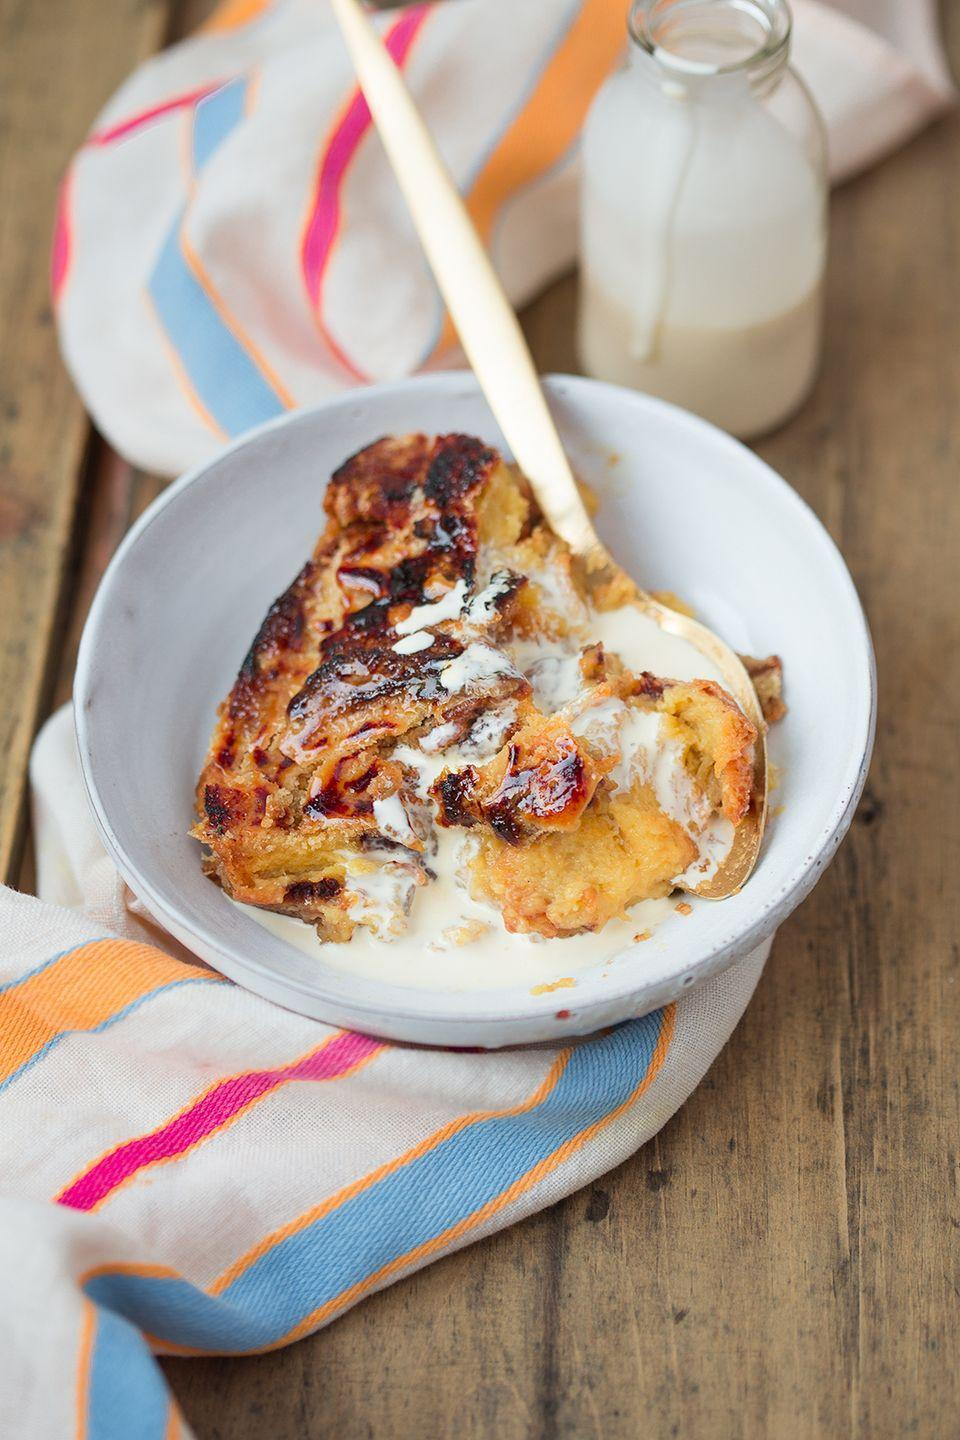 """<p>This traditional Irish dessert brings together homemade vanilla custard and sweet, flaky brioche.</p><p><a href=""""http://thekitchenalchemist.co.uk/recipes/2015/10/31/brioche-bead-and-butter-pud?rq=Bread%20and%20Butter%20Pudding"""" rel=""""nofollow noopener"""" target=""""_blank"""" data-ylk=""""slk:Get the recipe at The Kitchen Alchemist »"""" class=""""link rapid-noclick-resp""""><em>Get the recipe at The Kitchen Alchemist »</em></a></p>"""